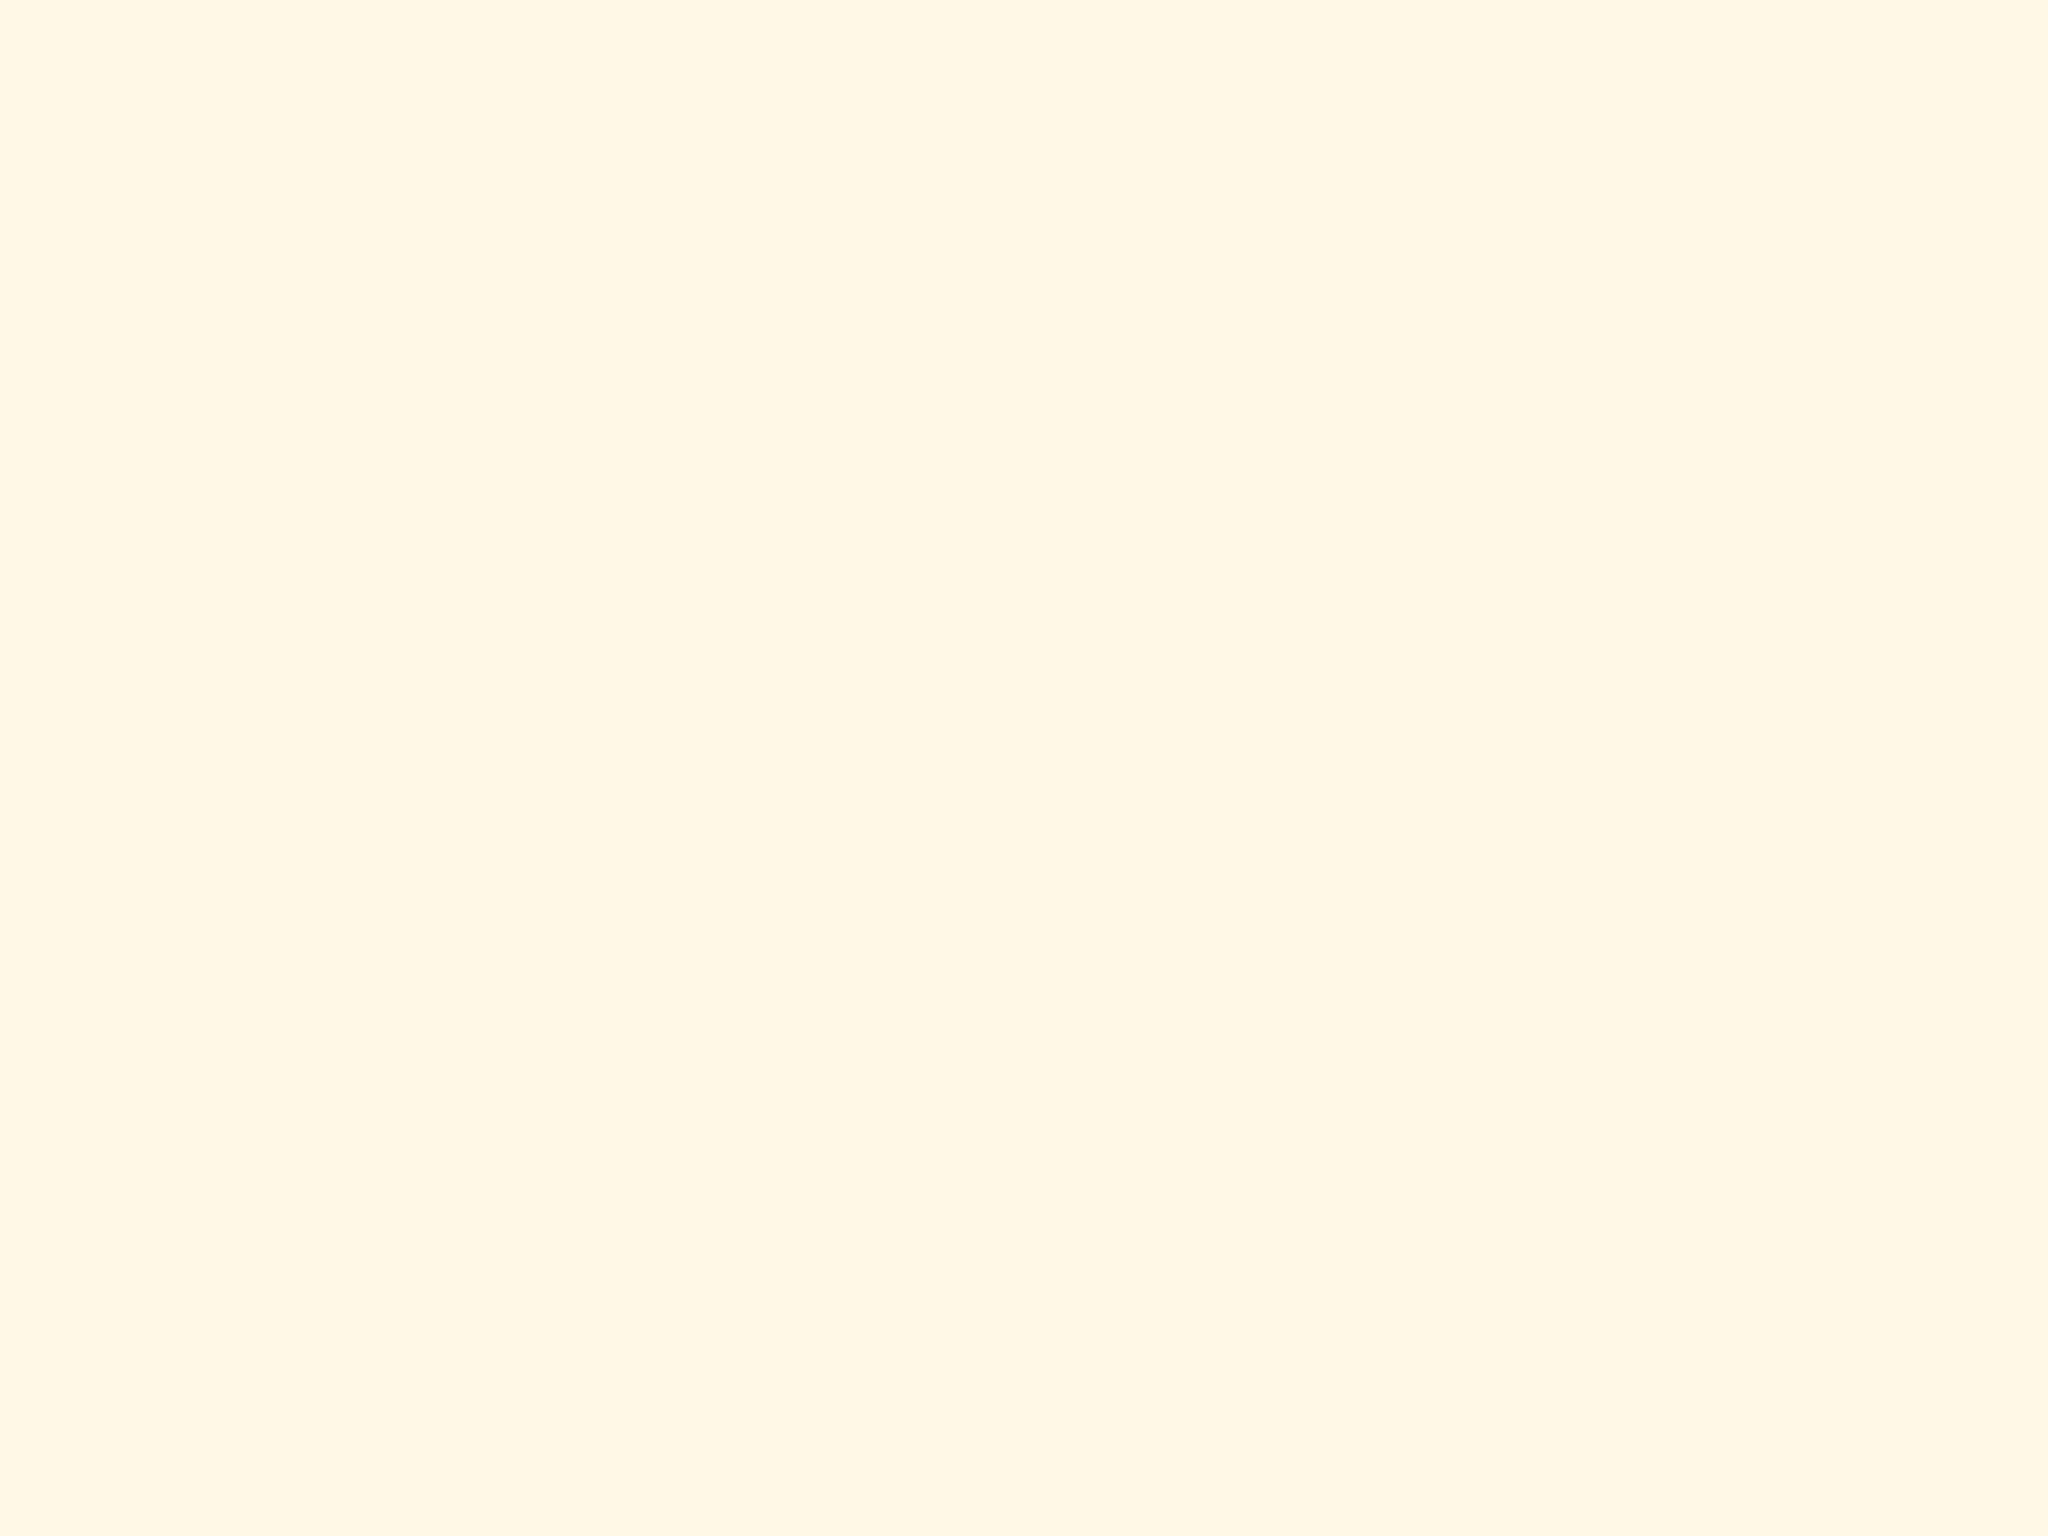 2048x1536 Cosmic Latte Solid Color Background